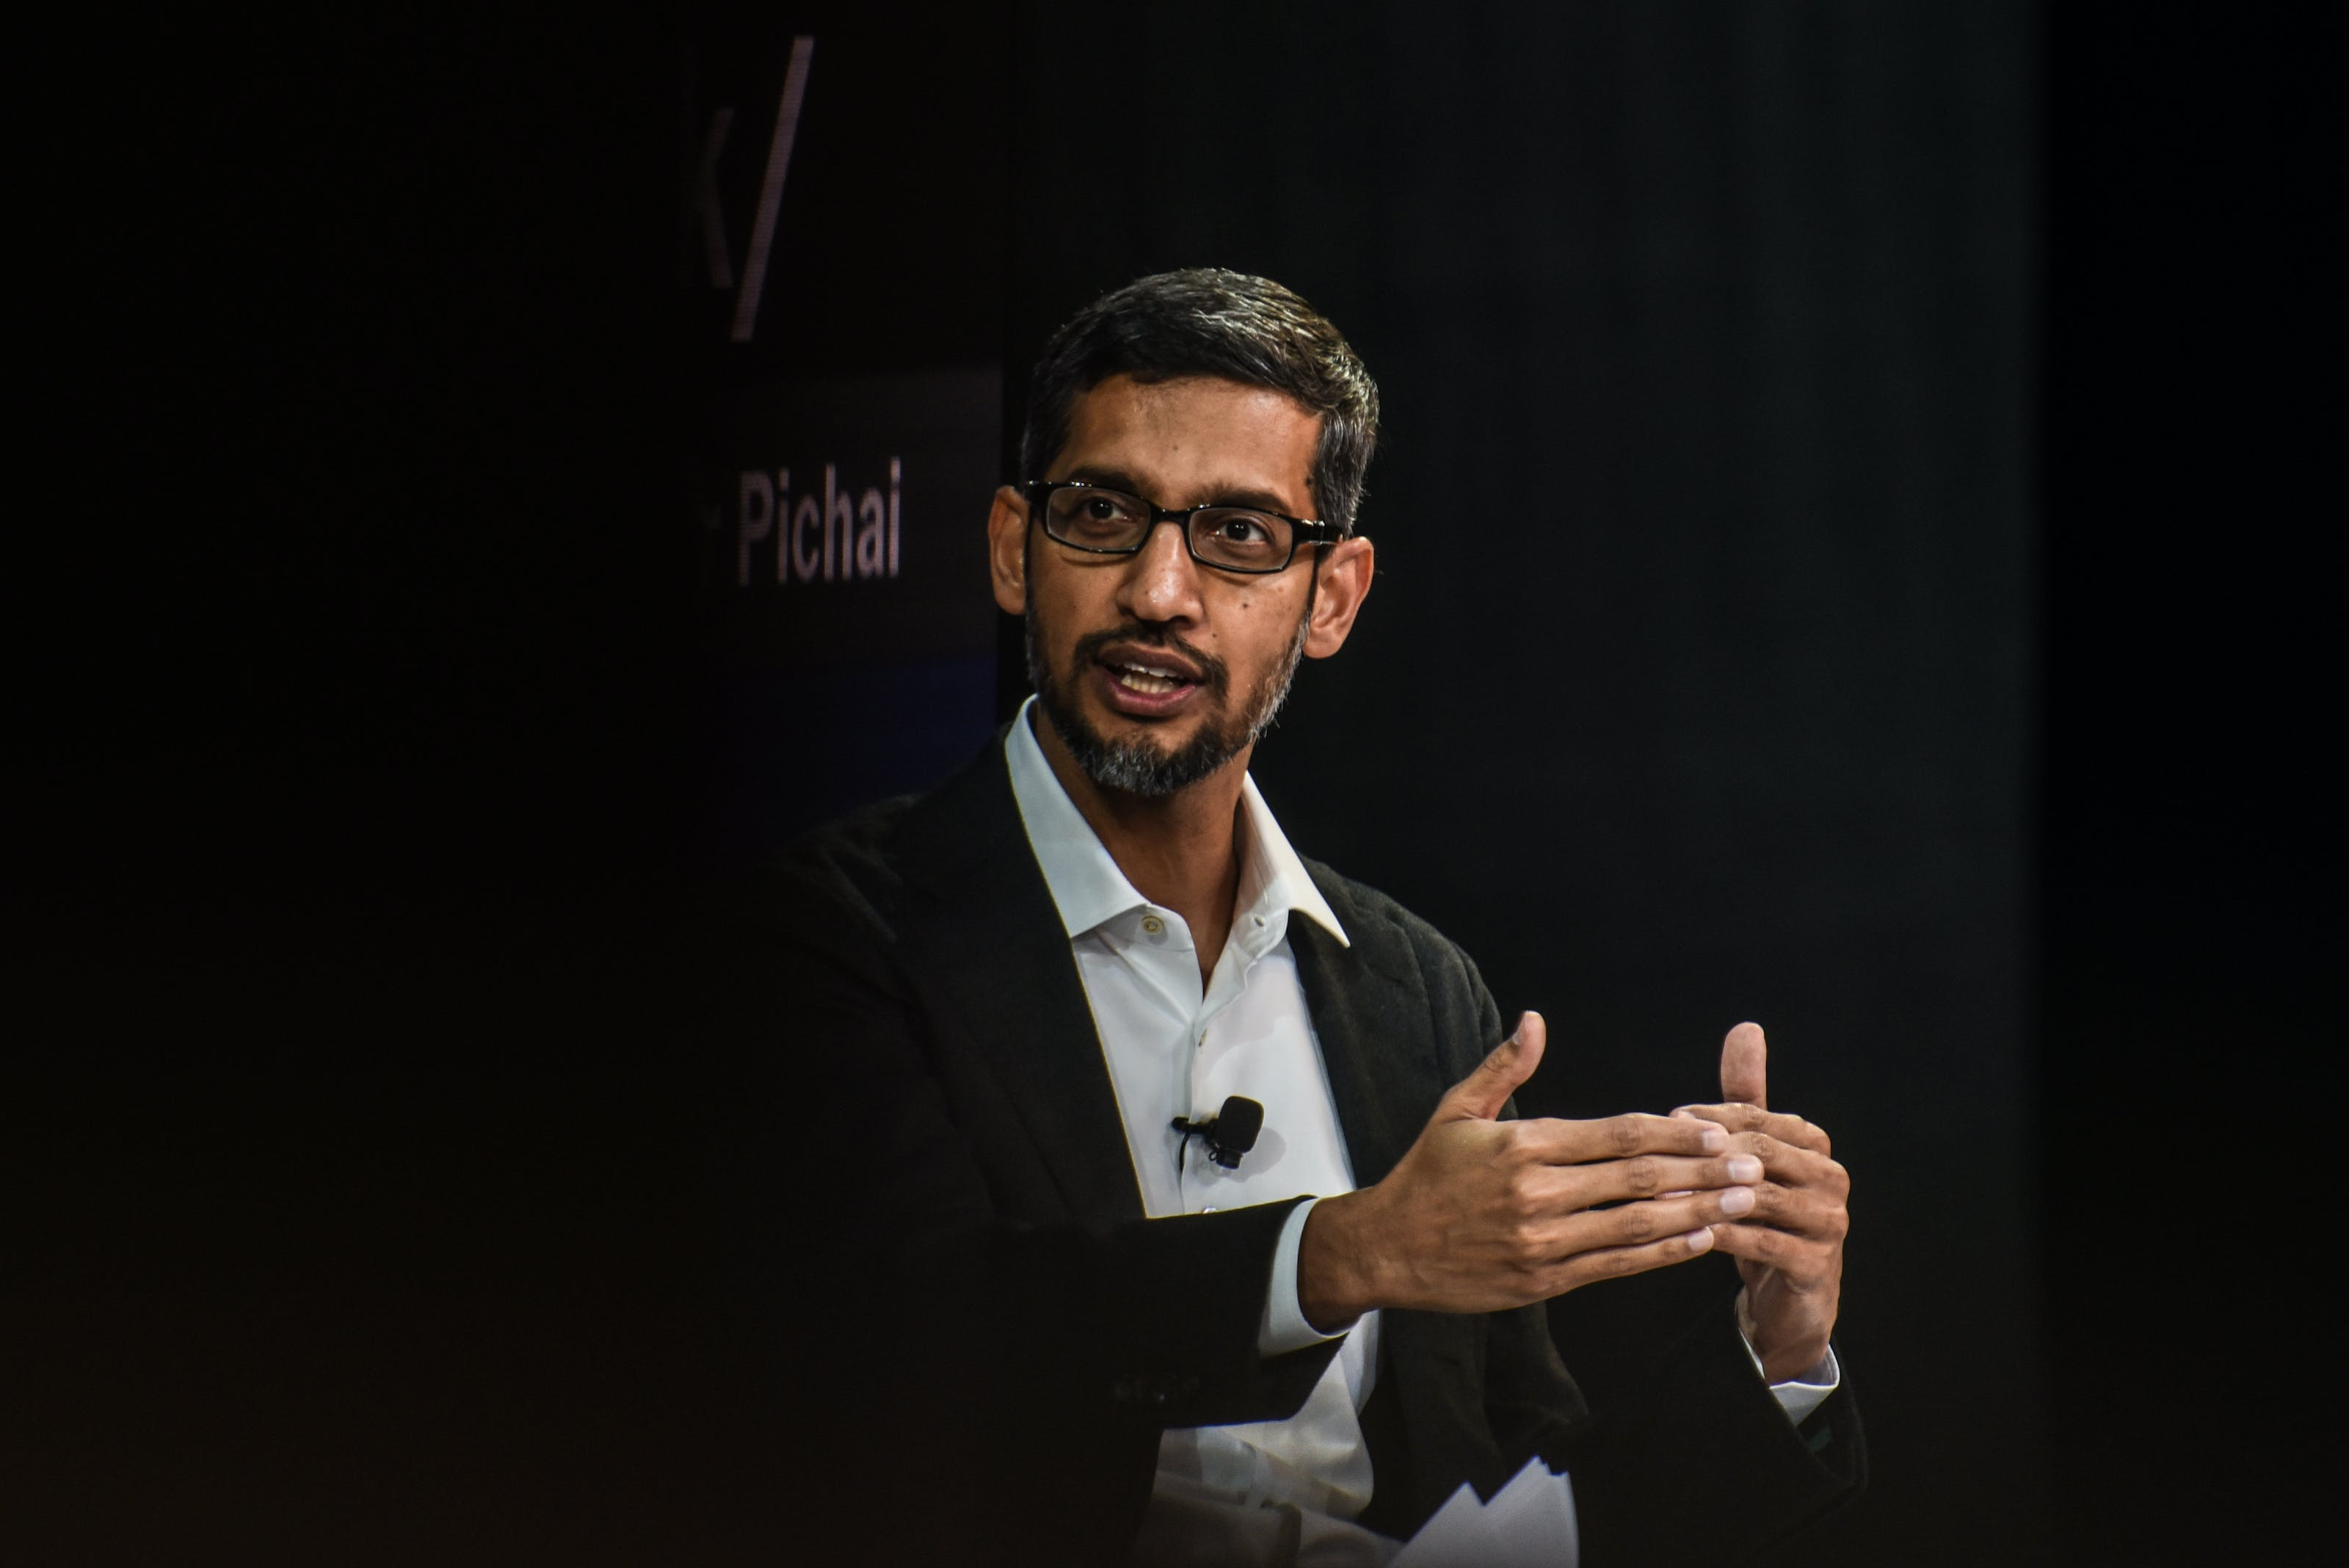 NEW YORK, NY - NOVEMBER 01: Sundar Pichai, C.E.O., Google Inc. speaks at the New York Times DealBook conference on November 1, 2018 in New York City. (Photo by Stephanie Keith/Getty Images)